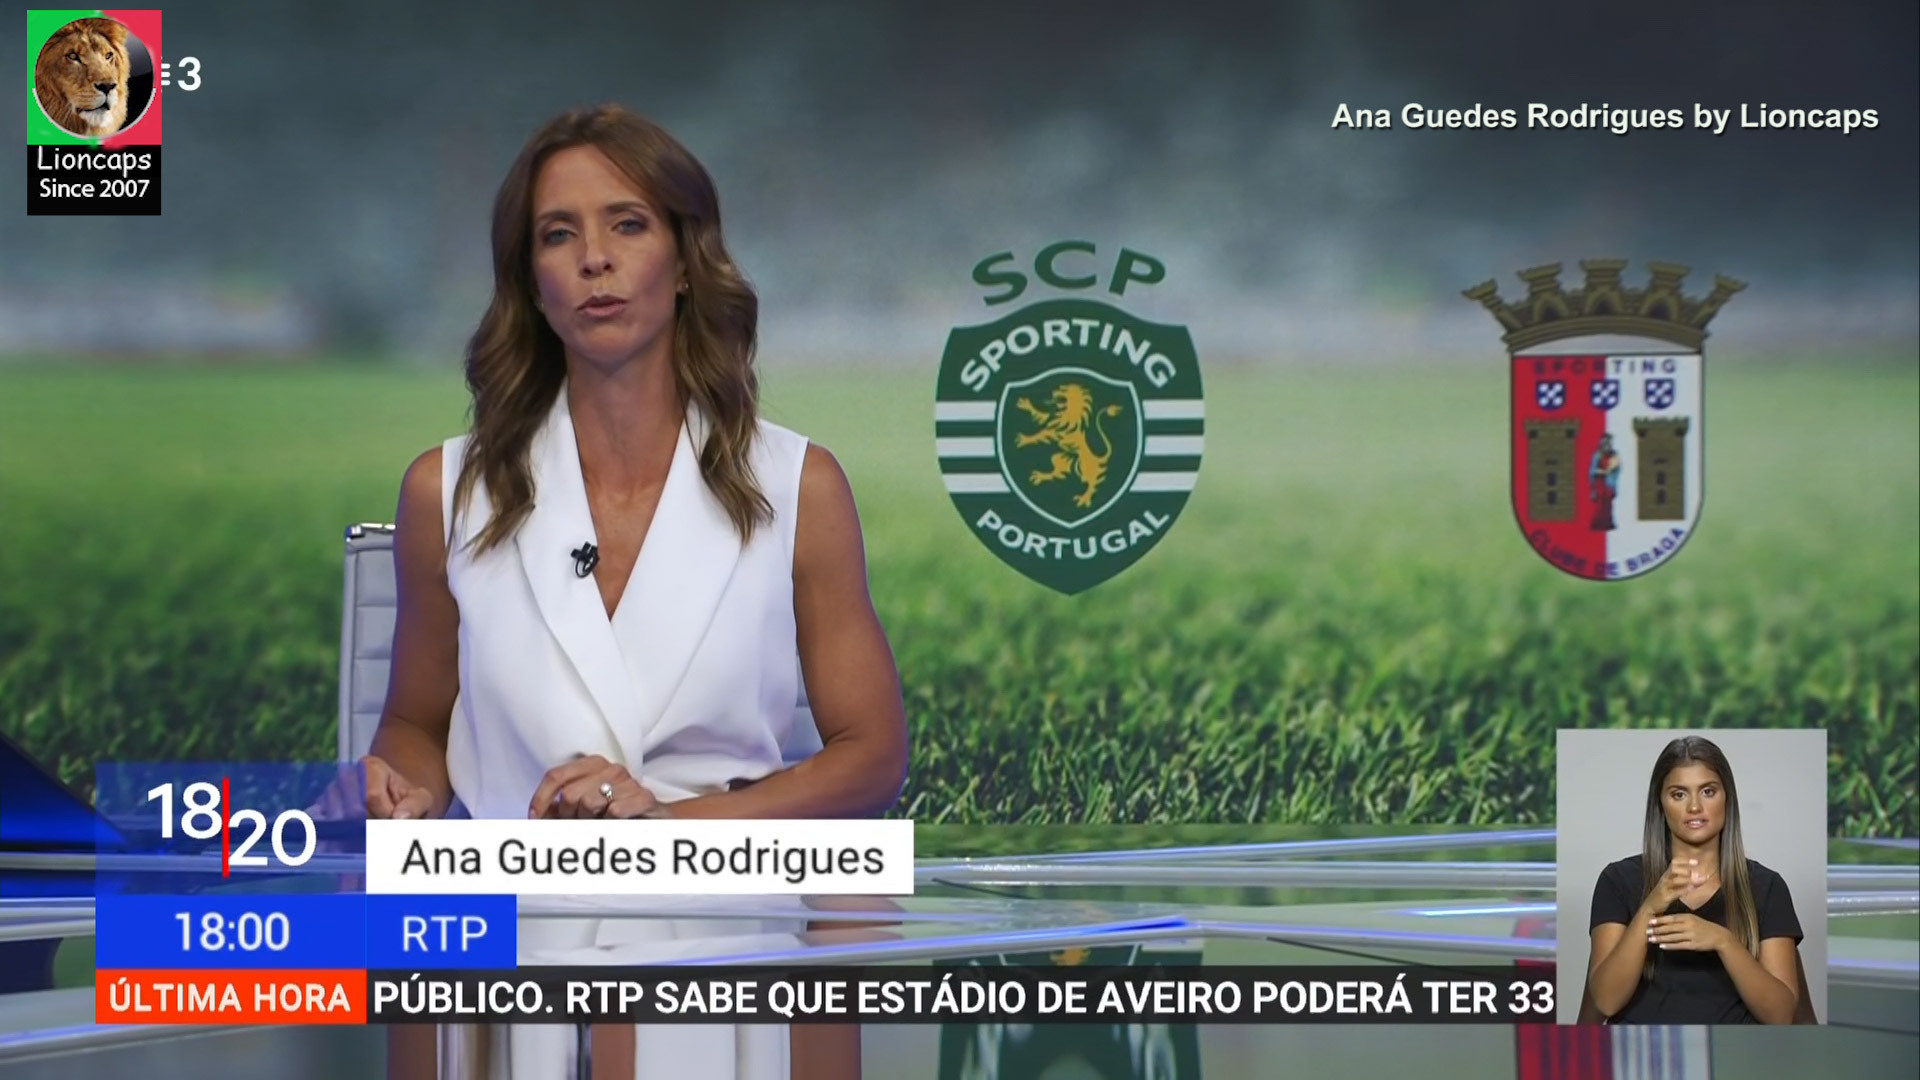 ana_guedes_rodrigues_lioncaps_15_08_2021 (3).jpg